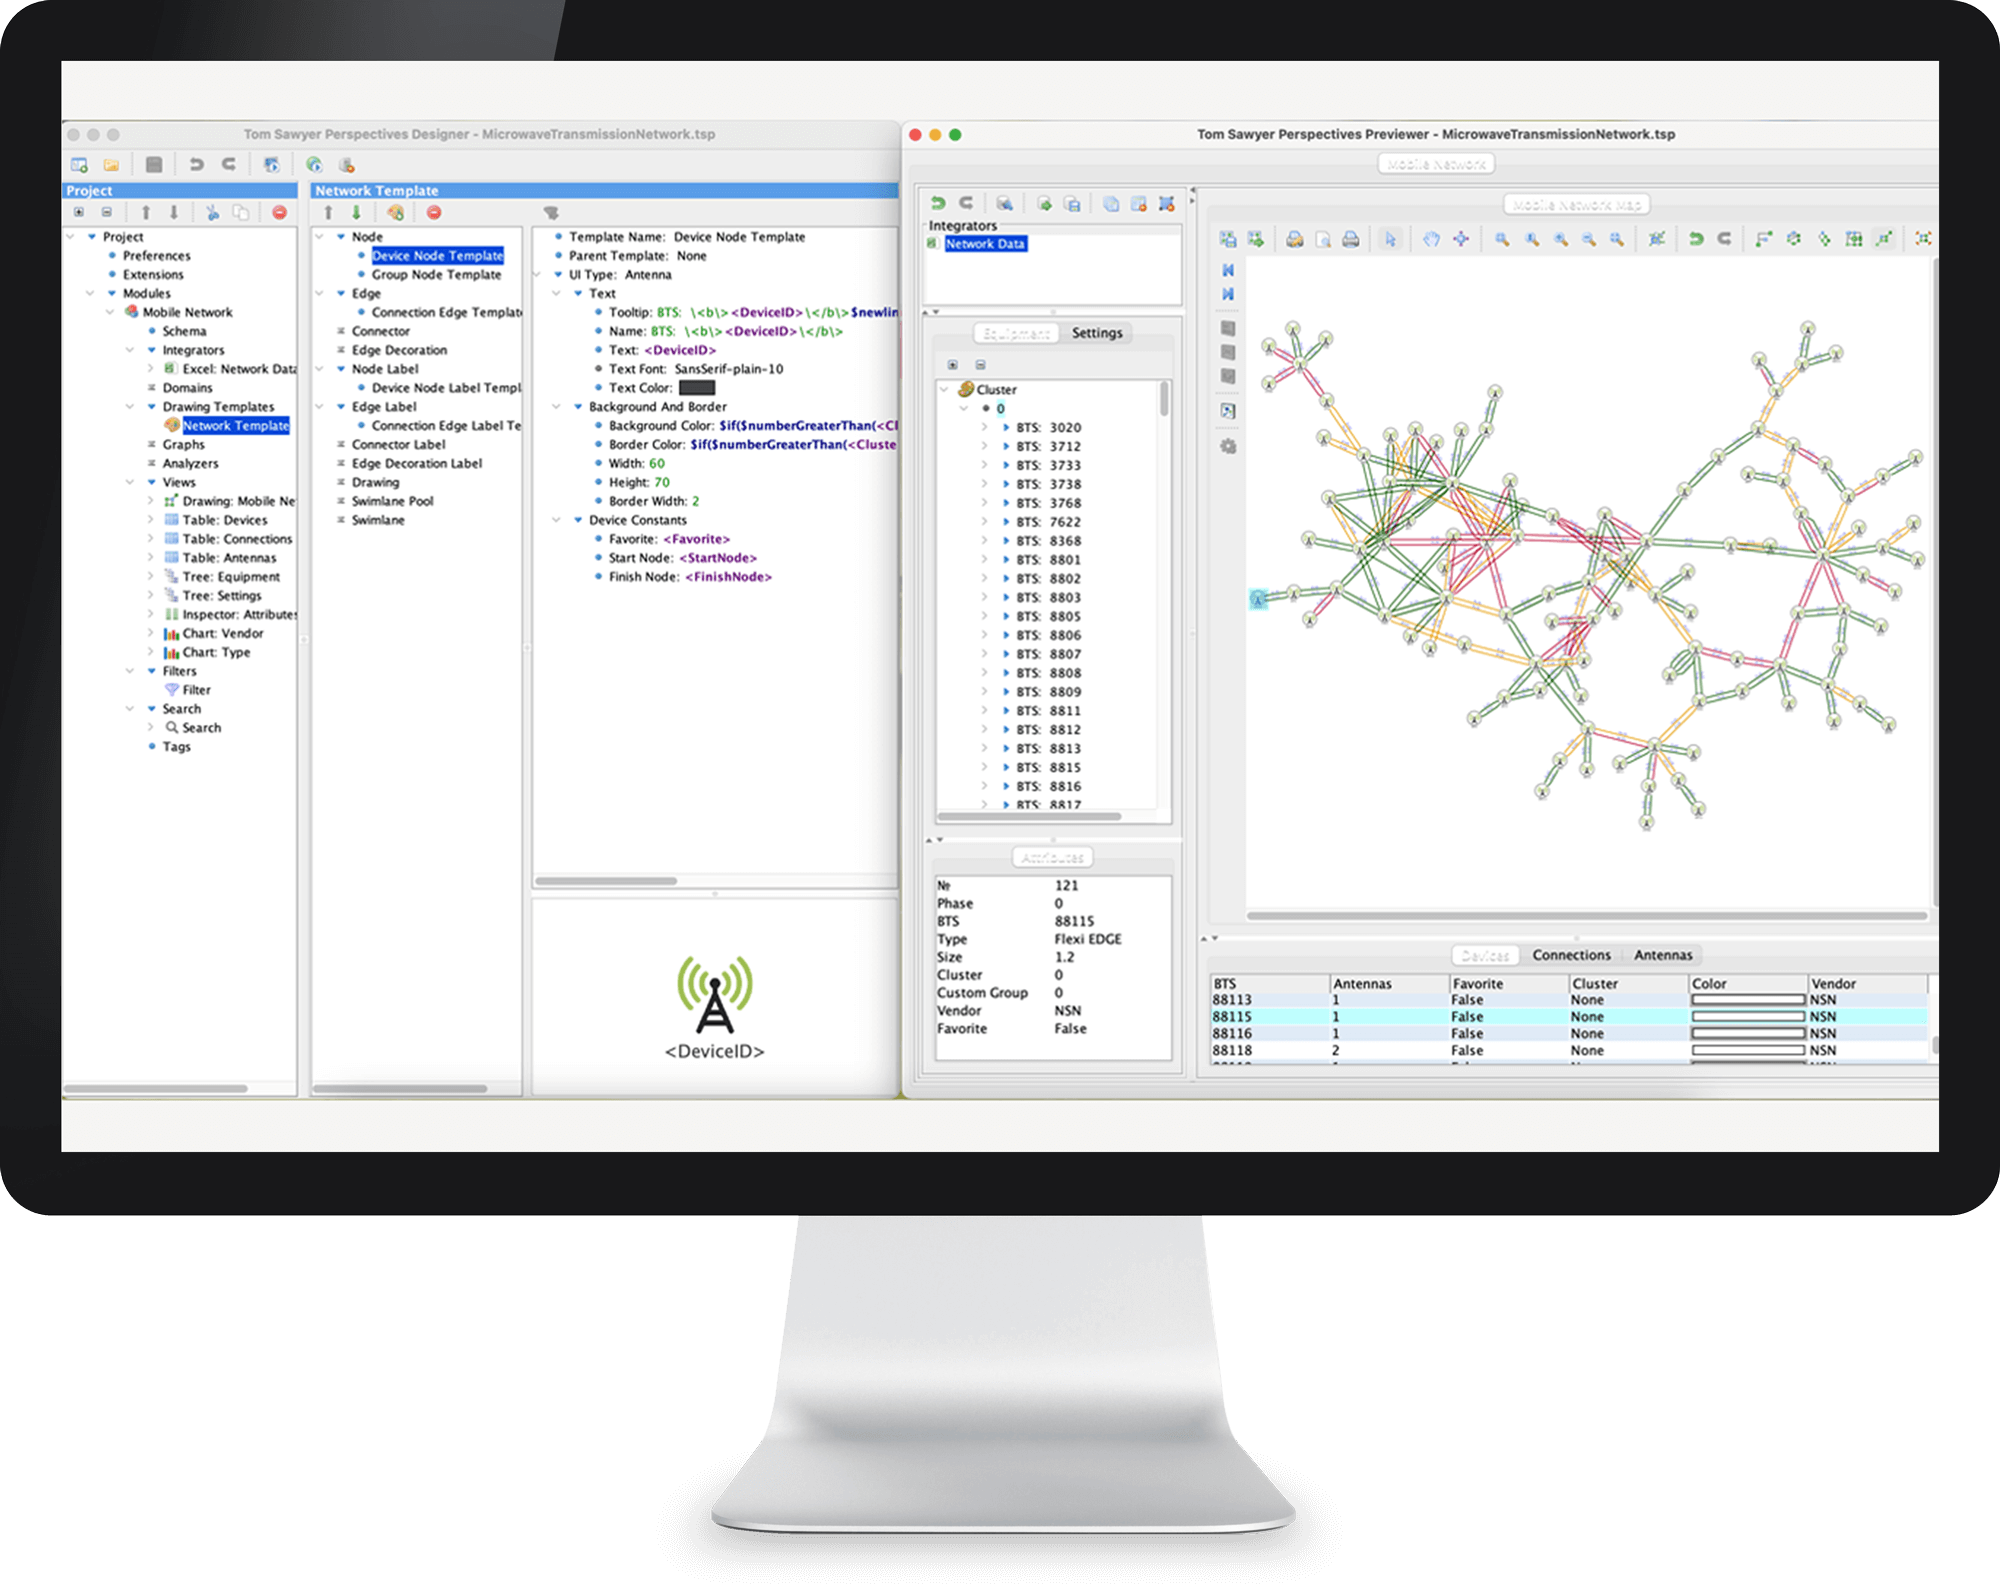 Perspectives is a low-code graph and data visualization development platform for building data-oriented applications fast.